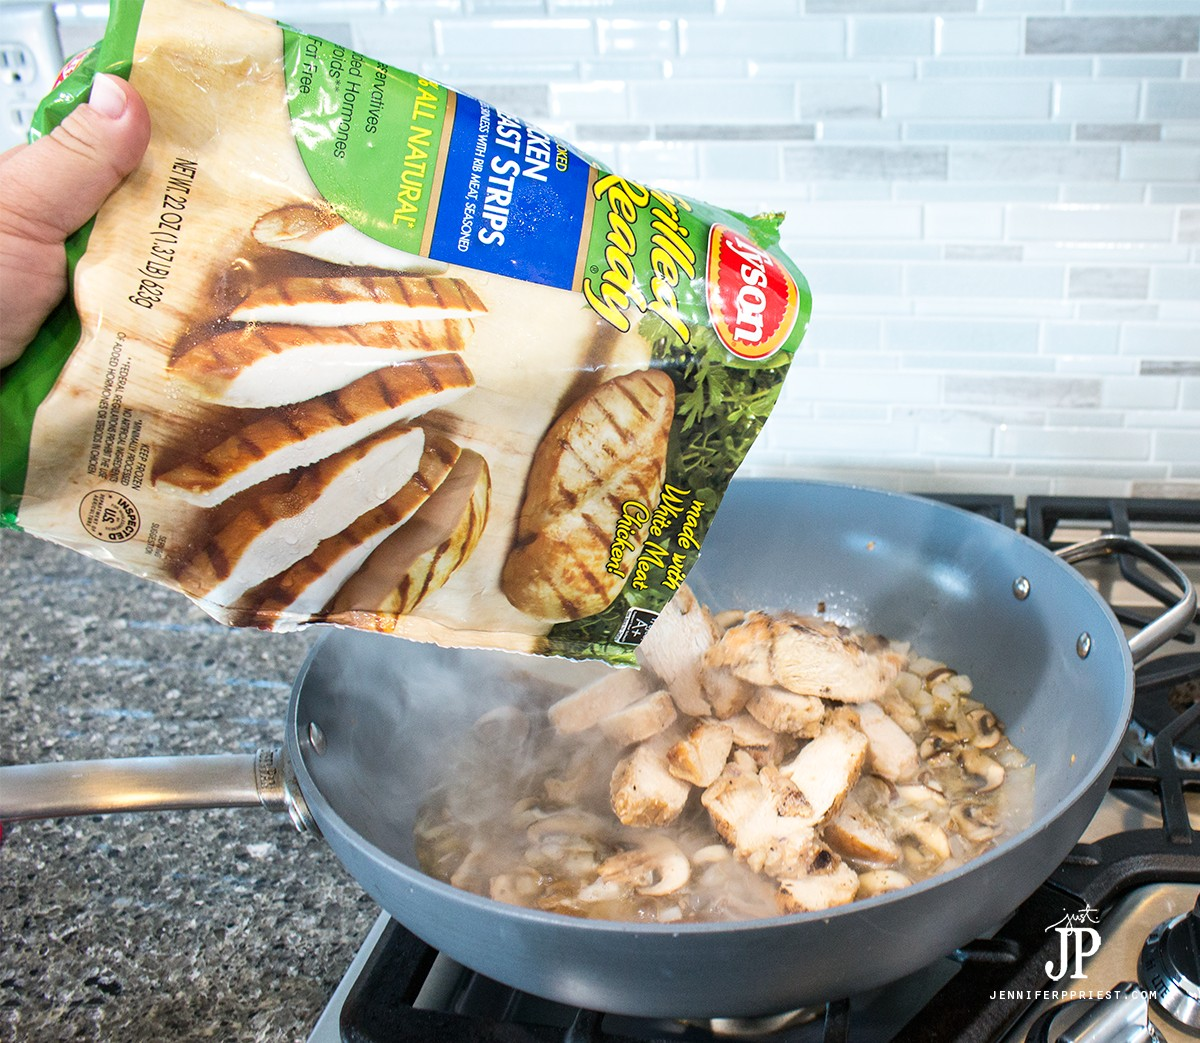 Add-Tyson-grilled-and-ready-chicken-straight-from-bag-frozen-jenniferpriest